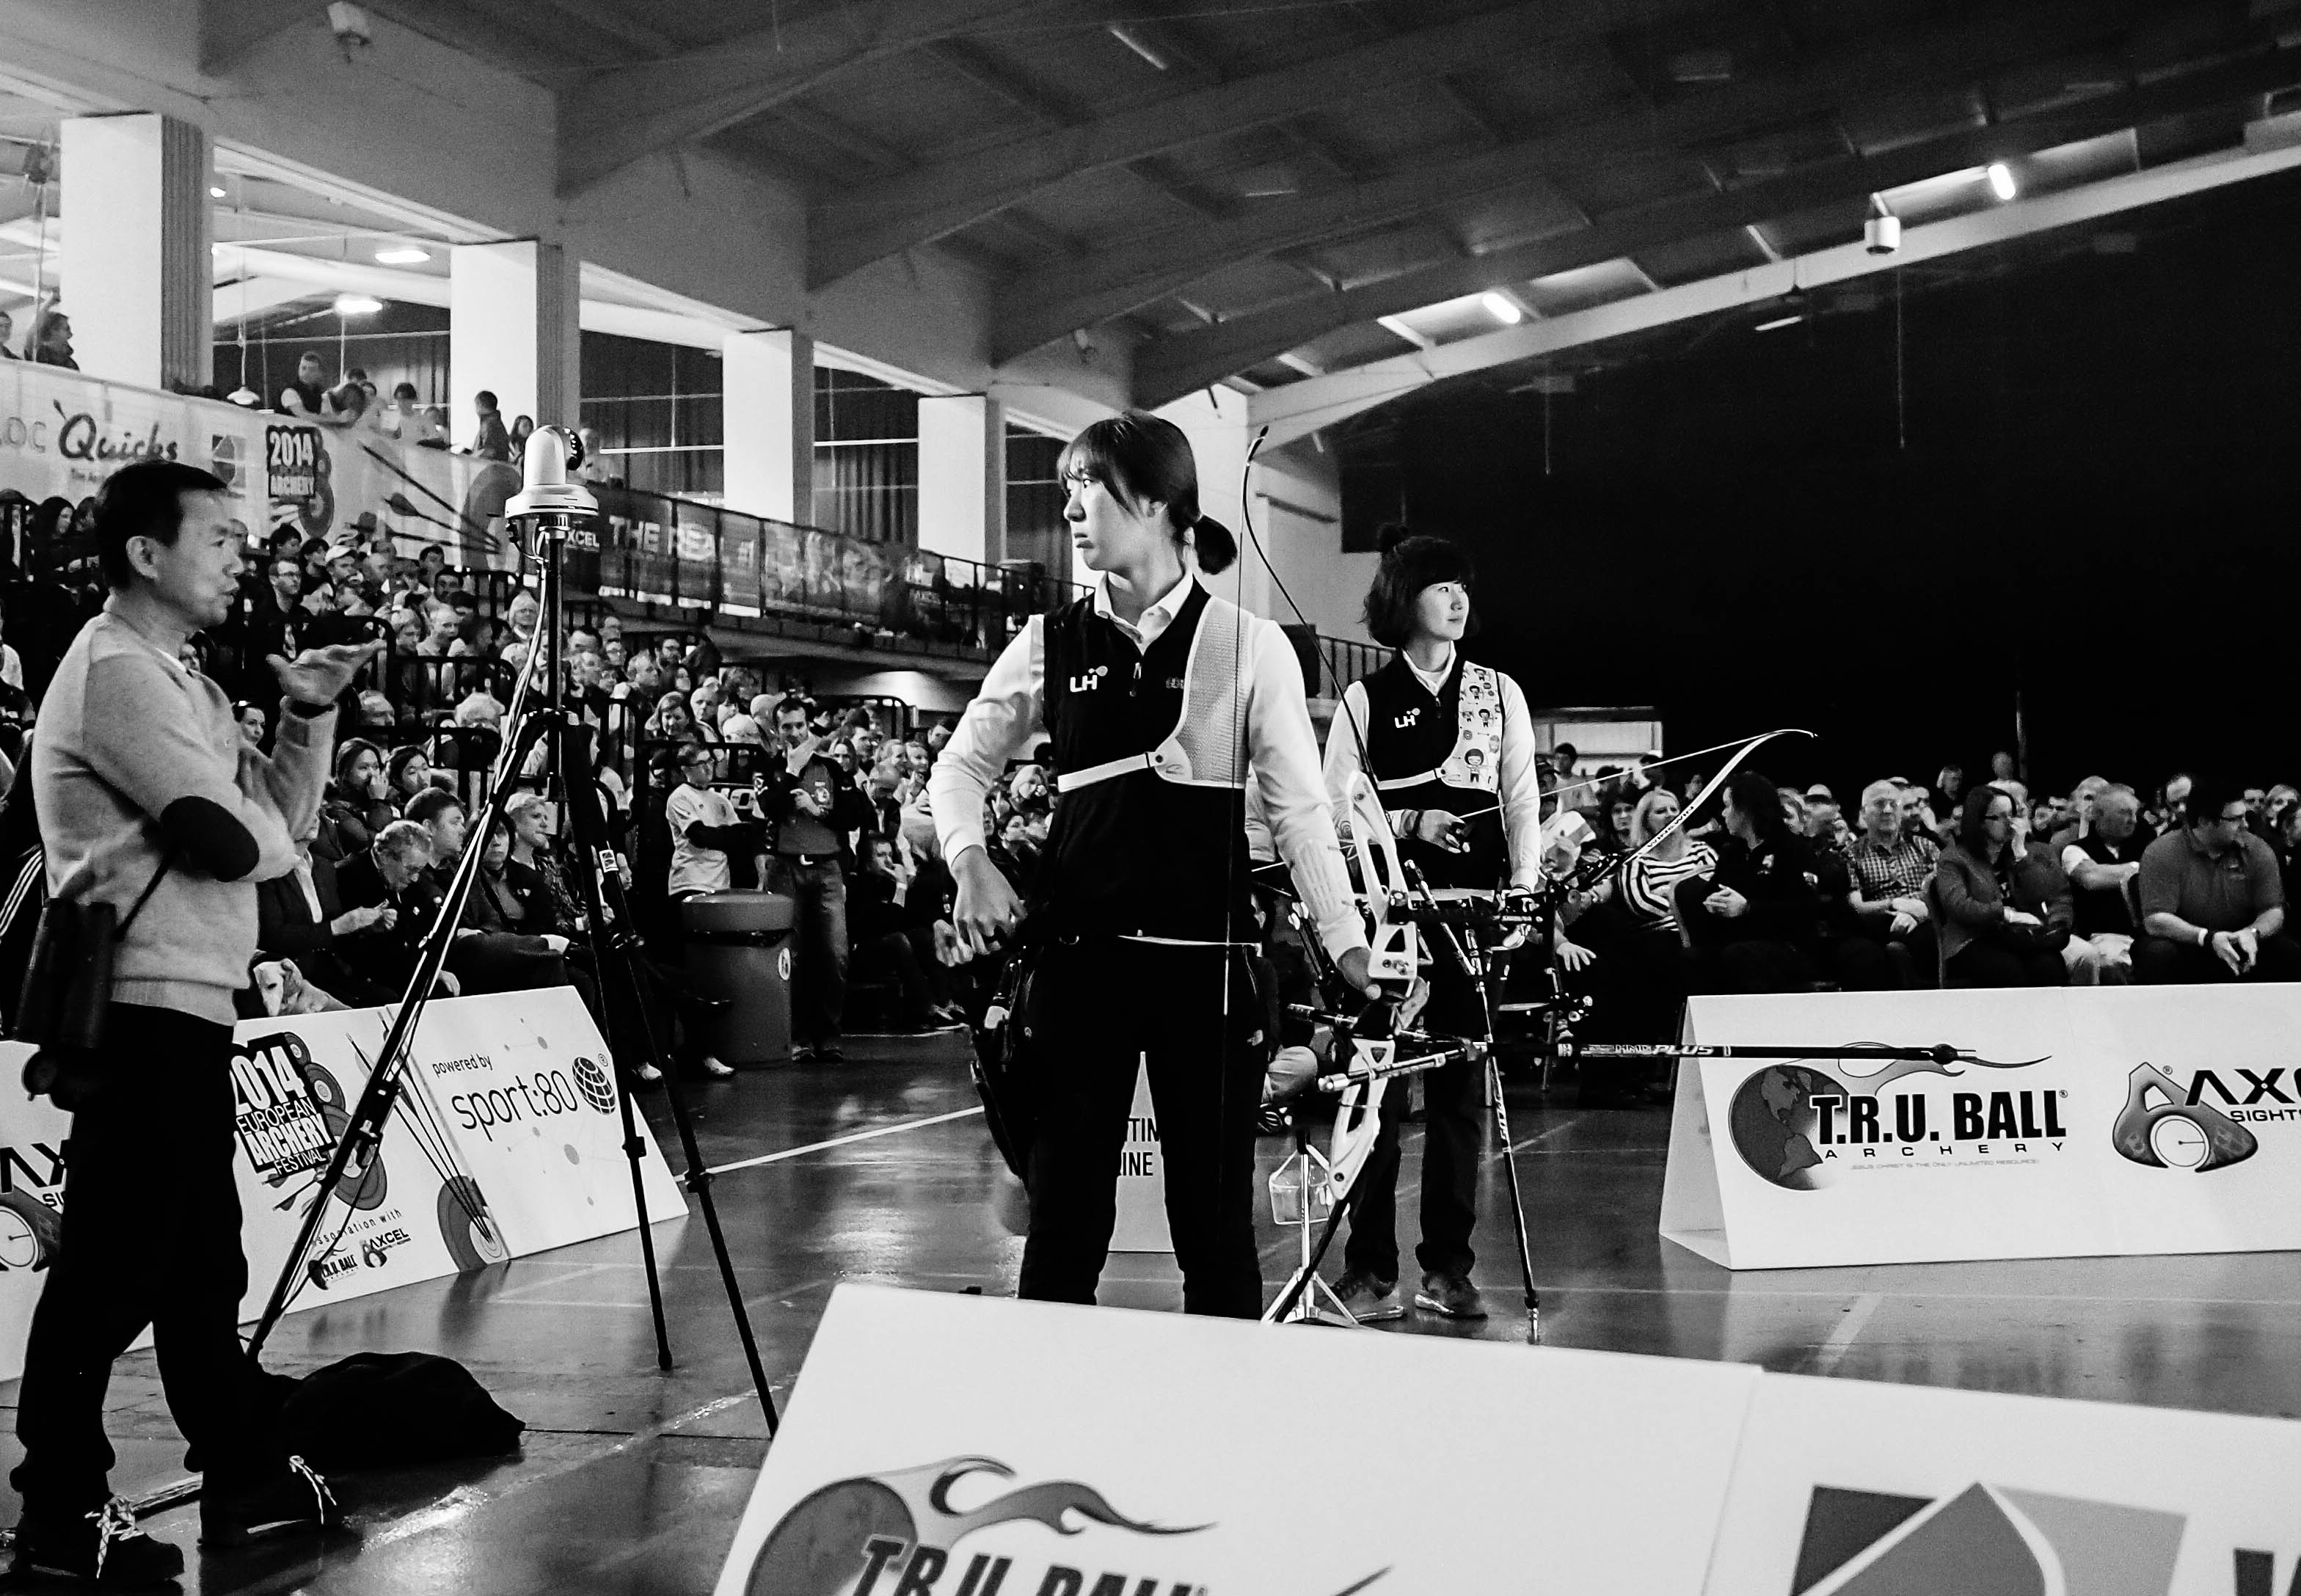 Team LH, finals of the 2014 European Archery Festival. © 2014 The Infinite Curve